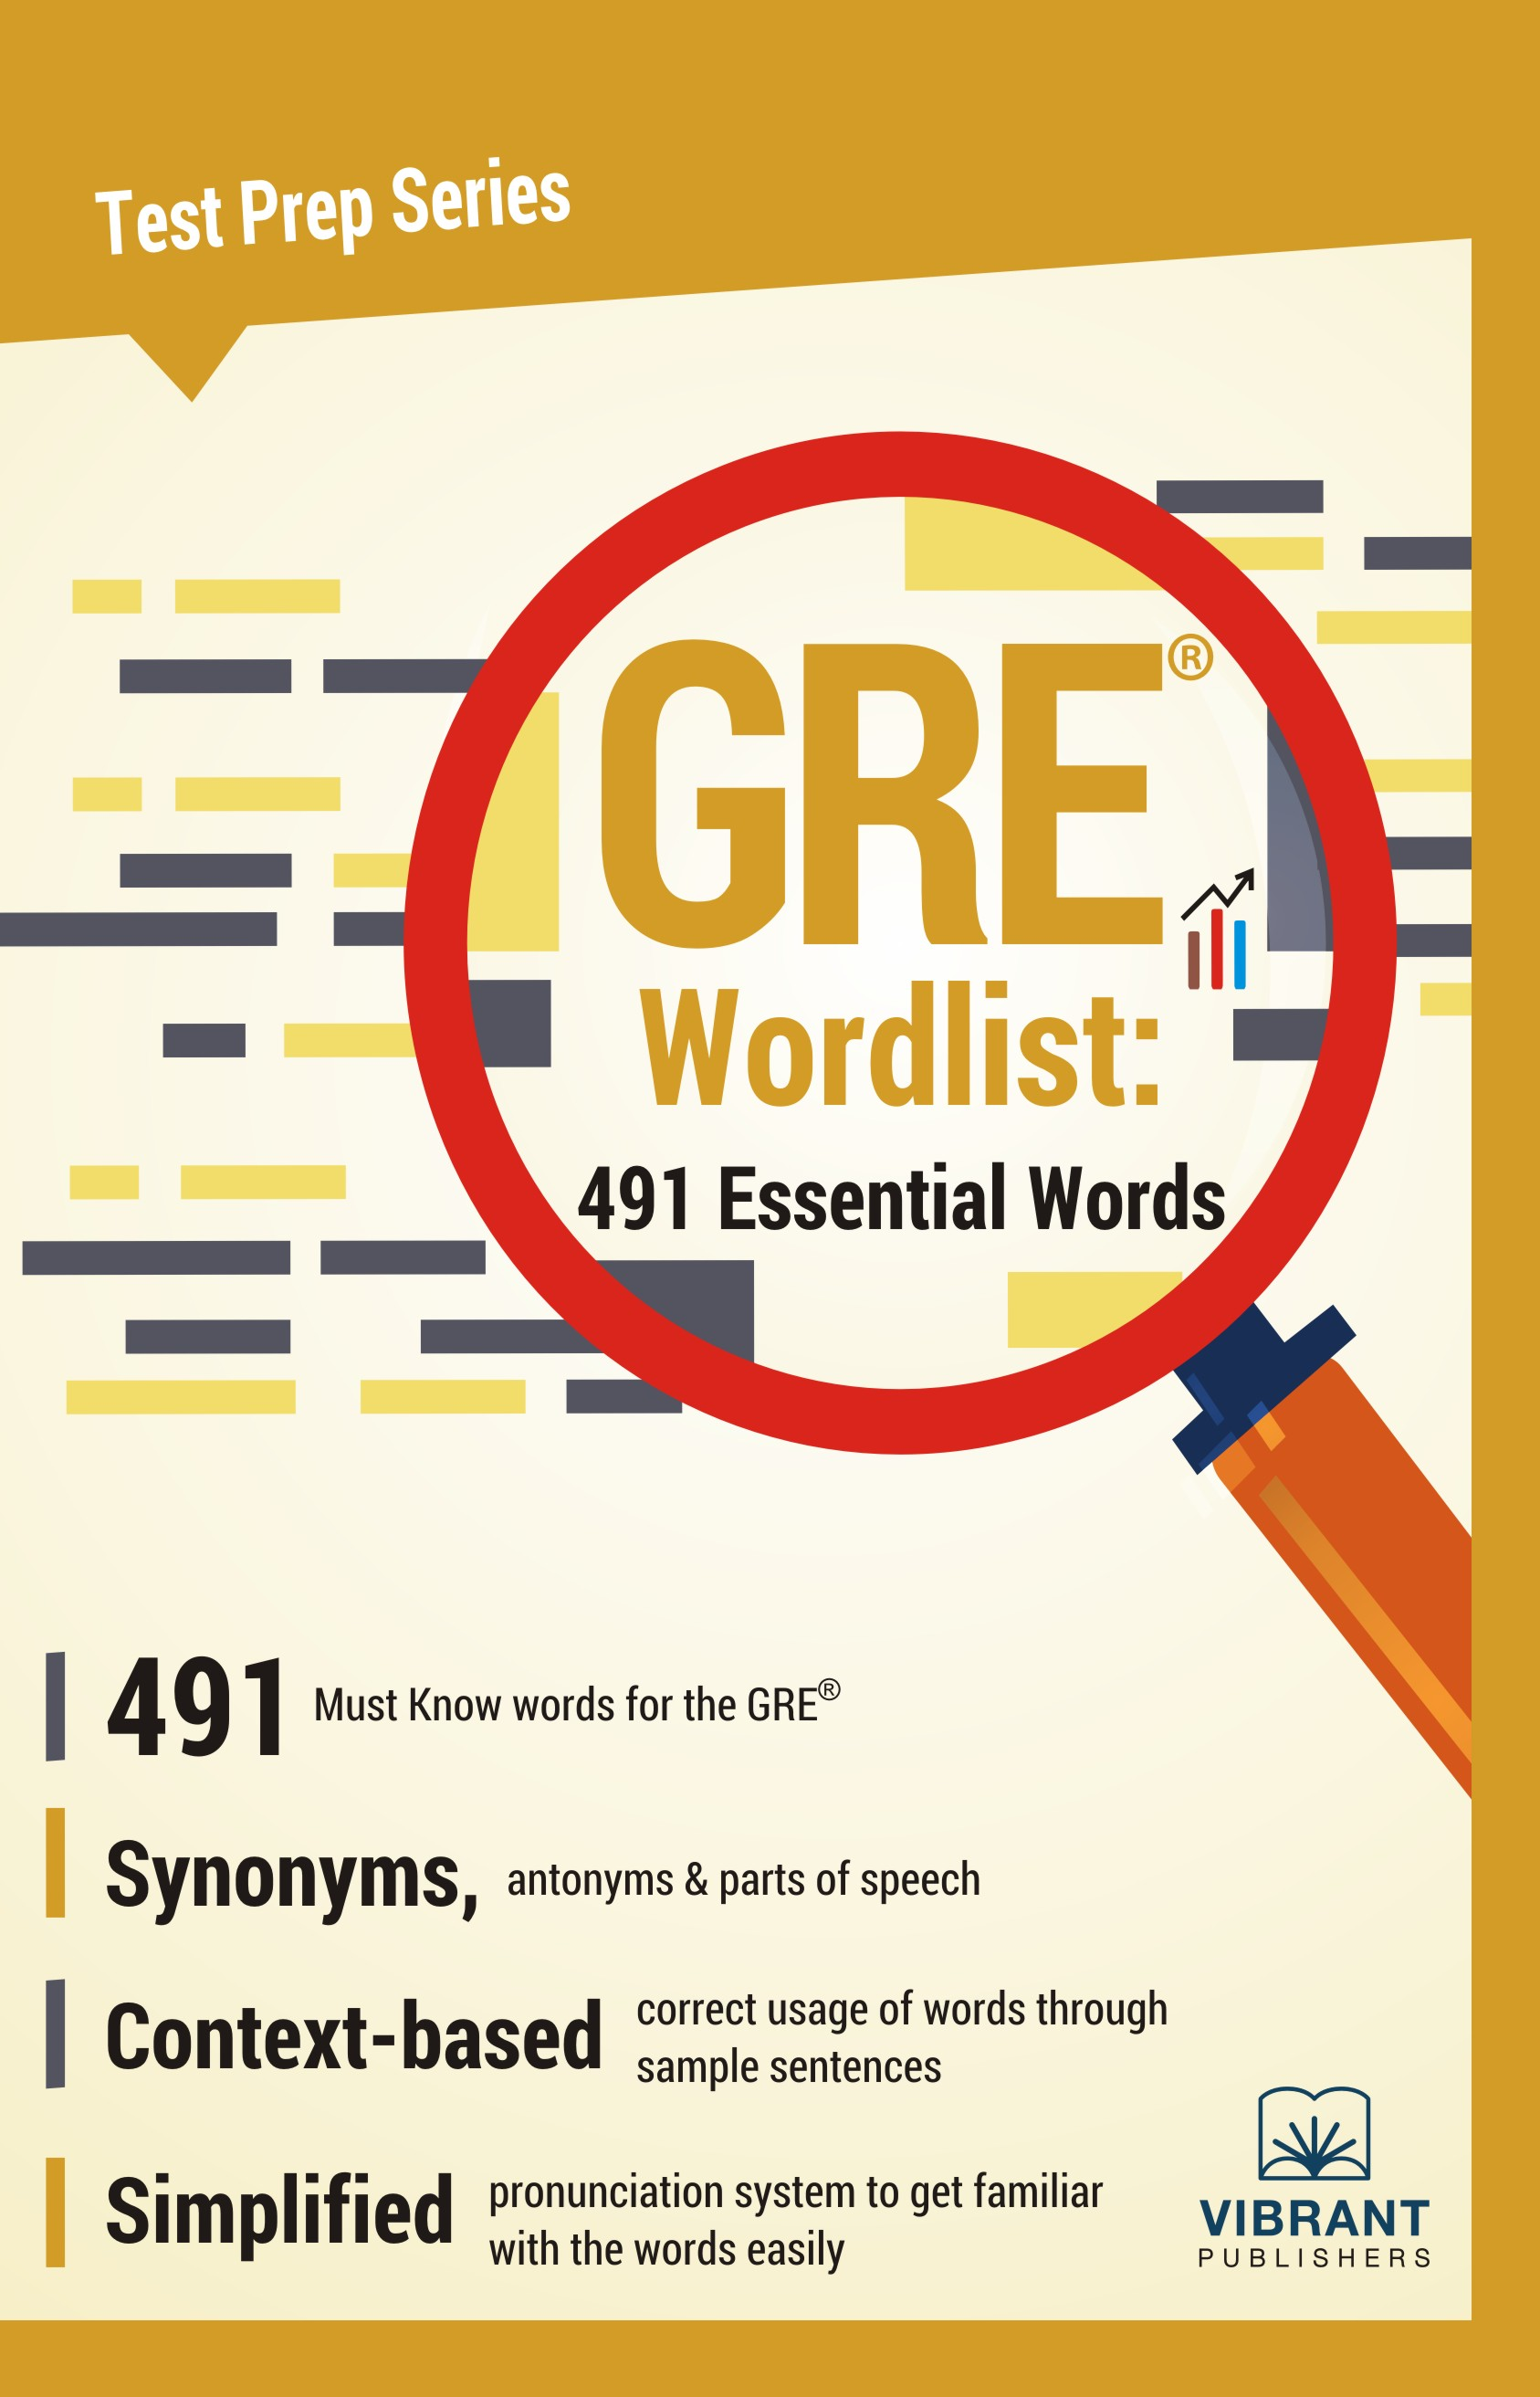 GRE Wordlist: 491 Essential Words, an Ebook by Vibrant Publishers